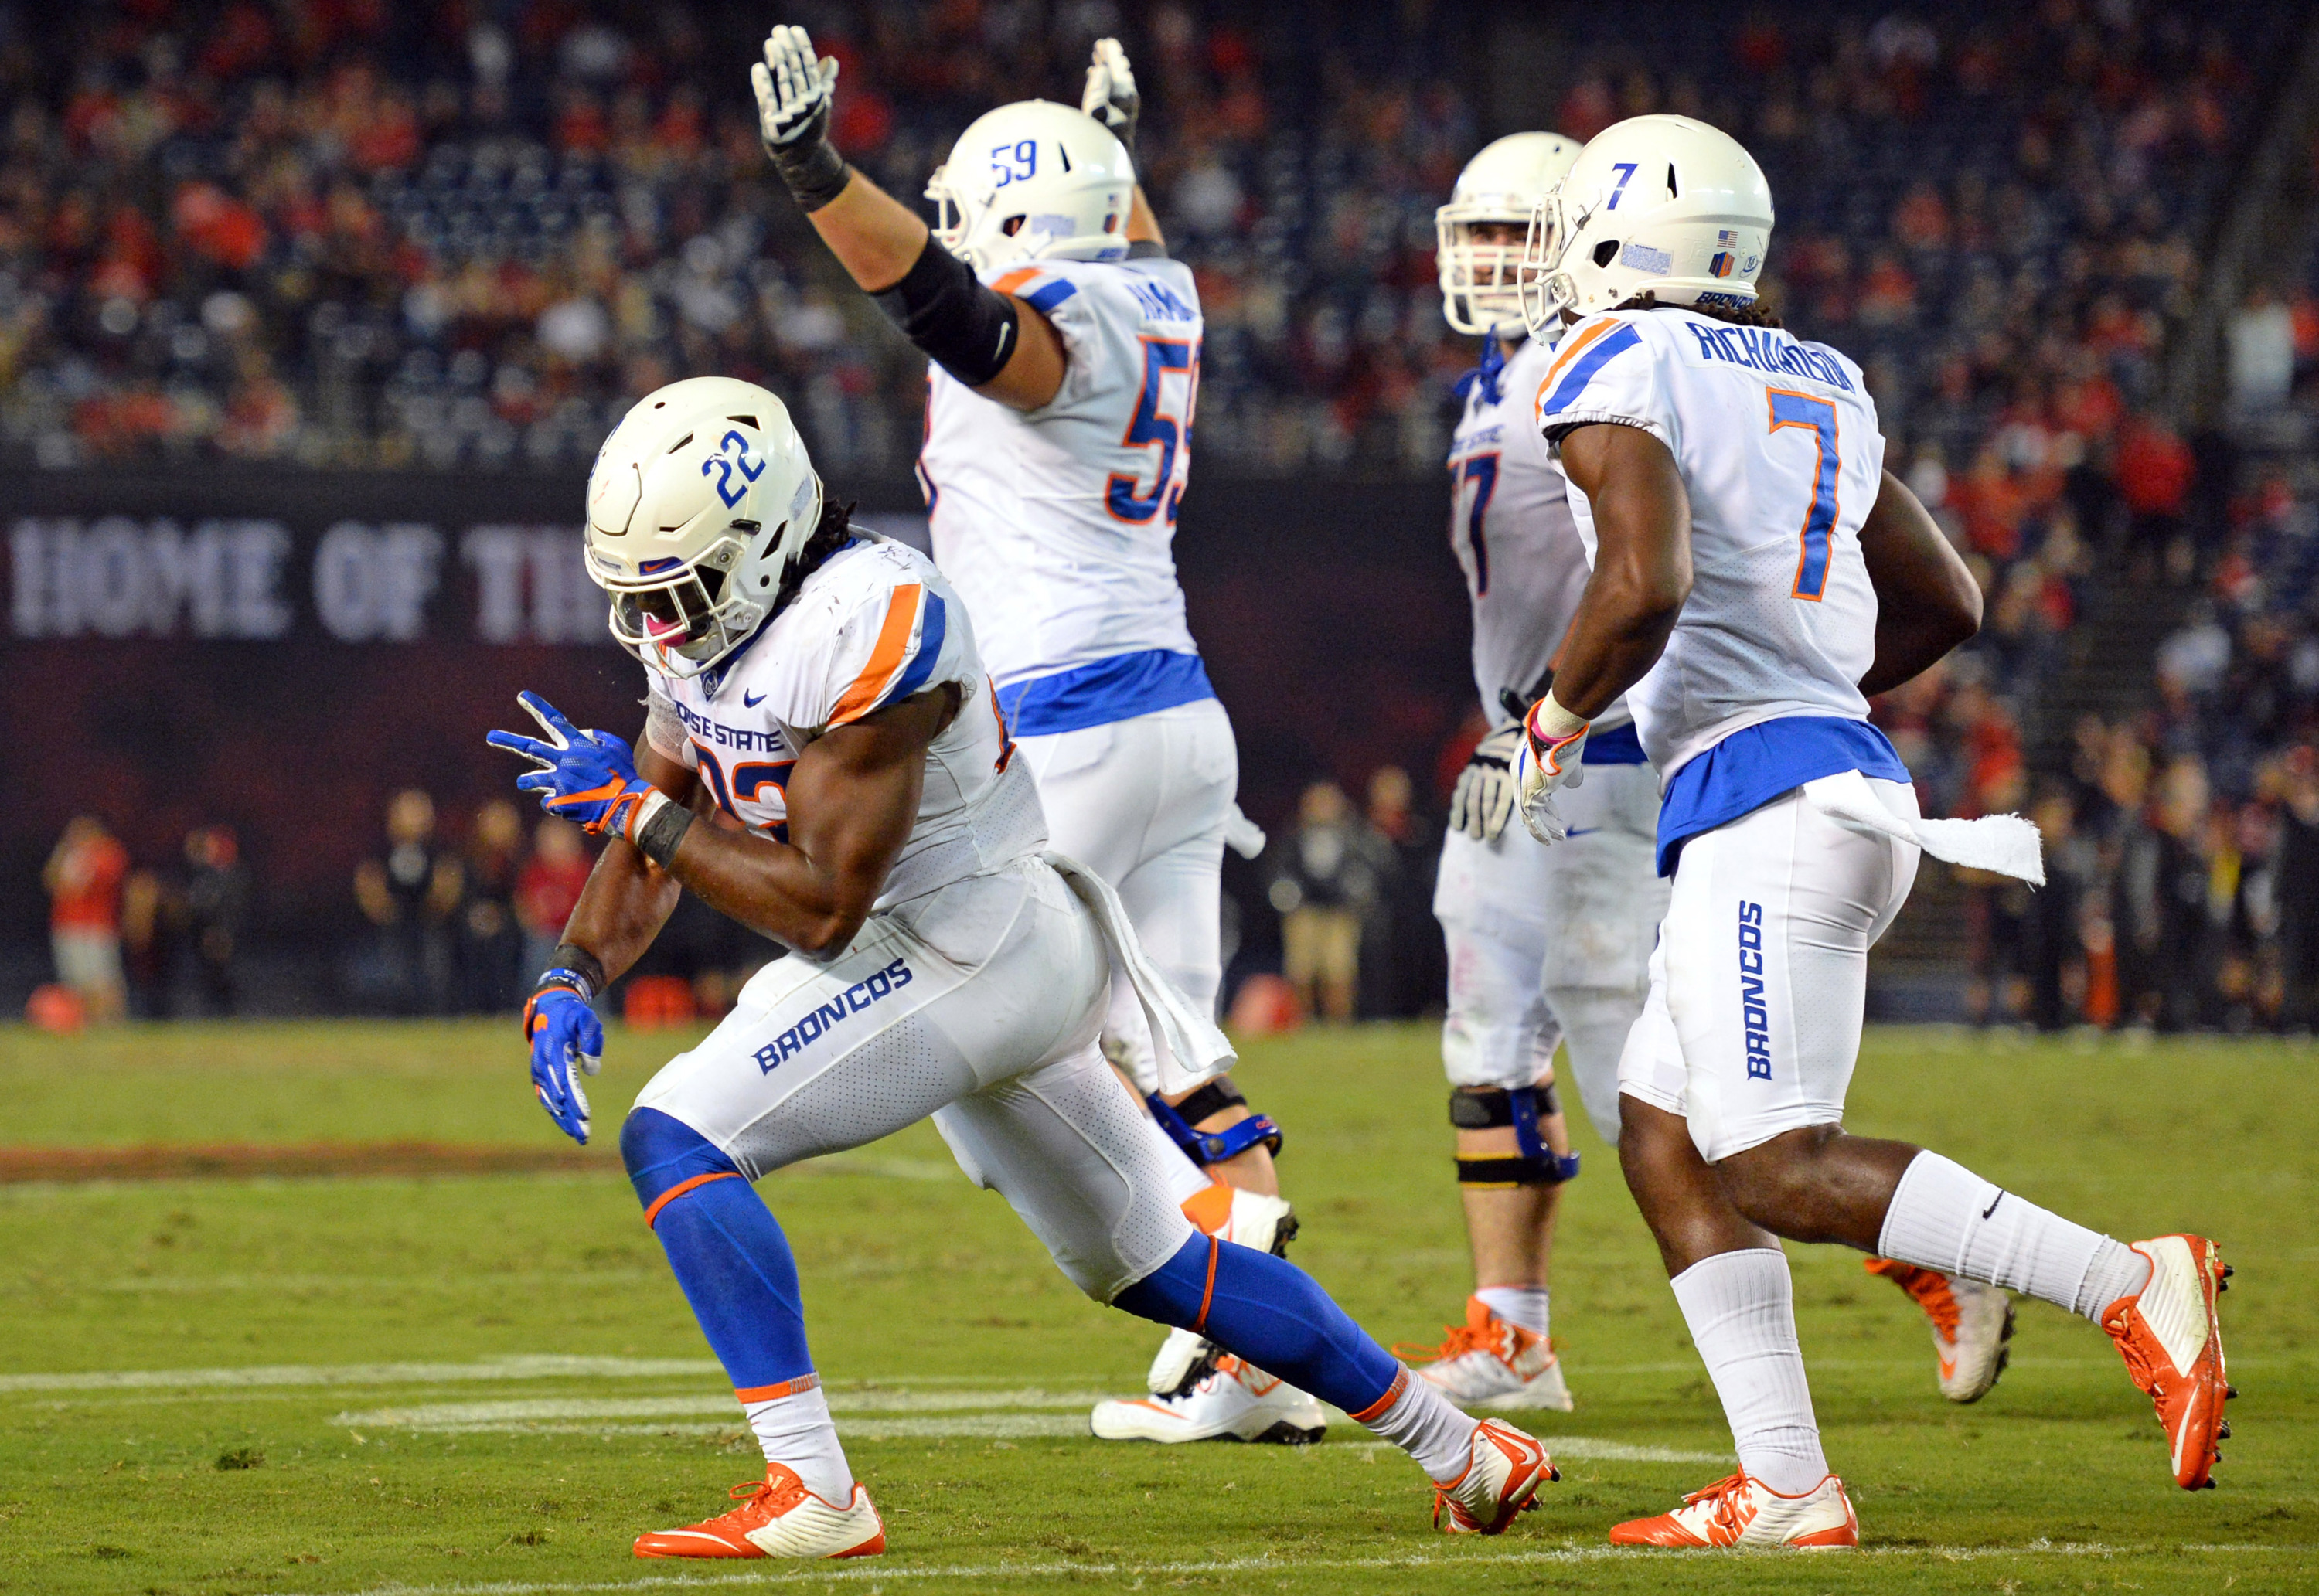 Oct 14, 2017; San Diego, CA, USA; Boise State Broncos running back Alexander Mattison (22) celebrates with teammates after a fourth quarter touchdown against the San Diego State Aztecs at SDSSU Stadium. Mandatory Credit: Jake Roth-USA TODAY Sport